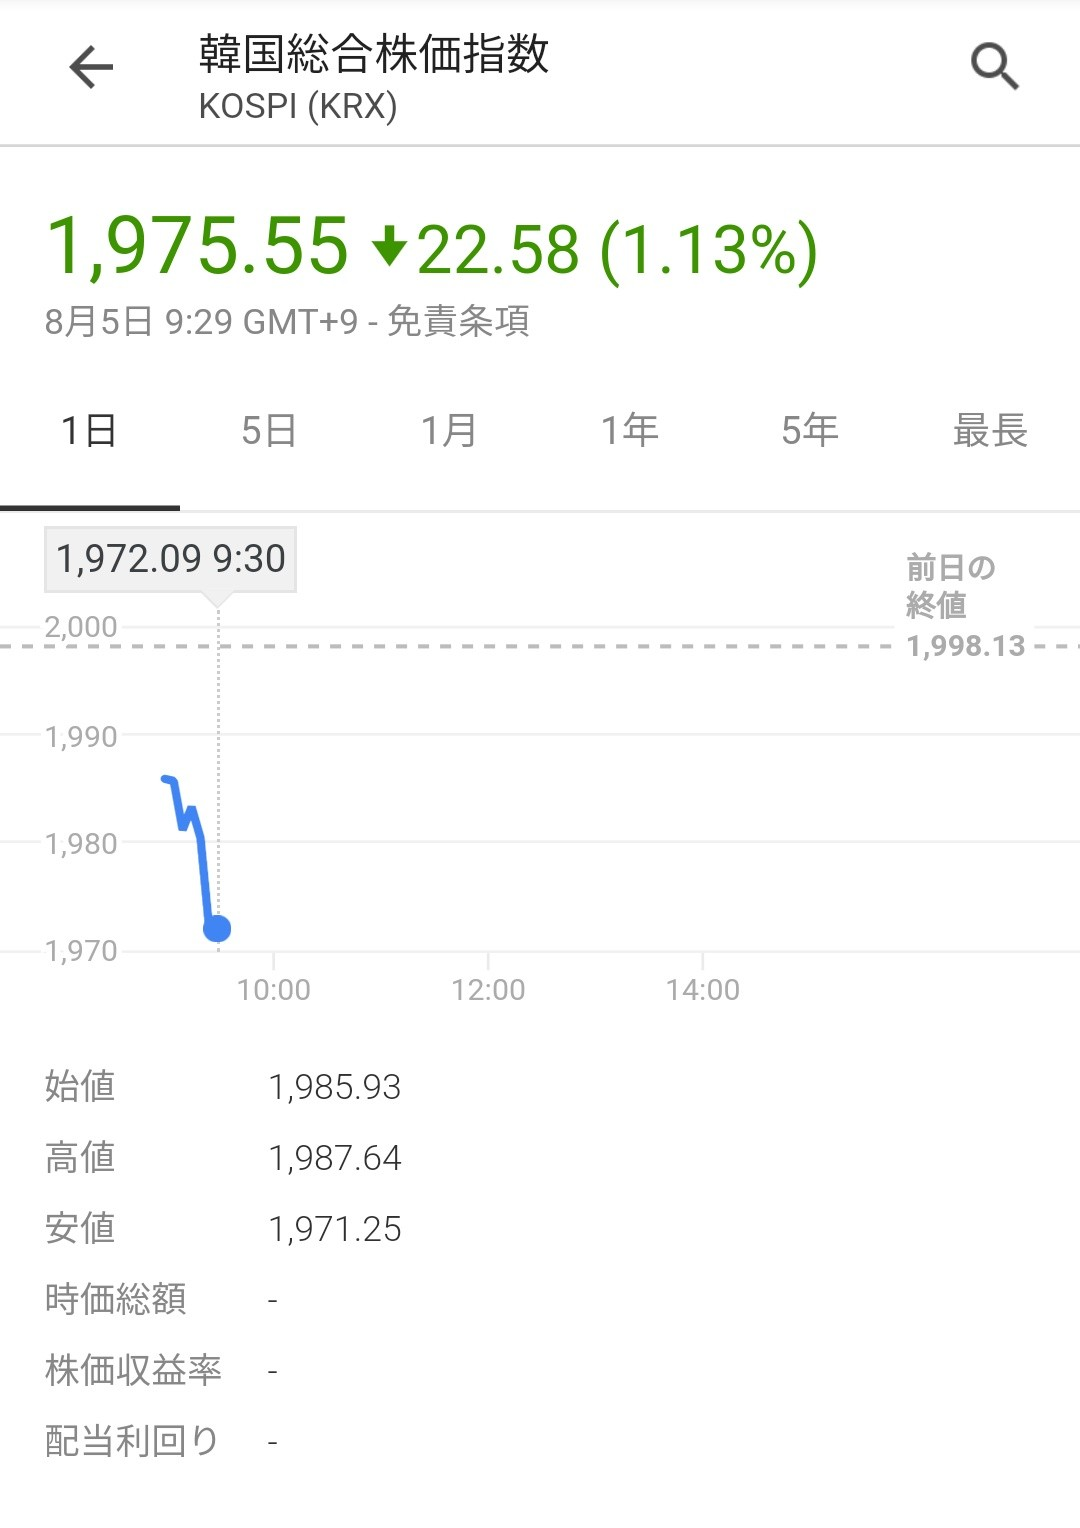 [Urgent] South Koreas share price crashed in just 30 minutes